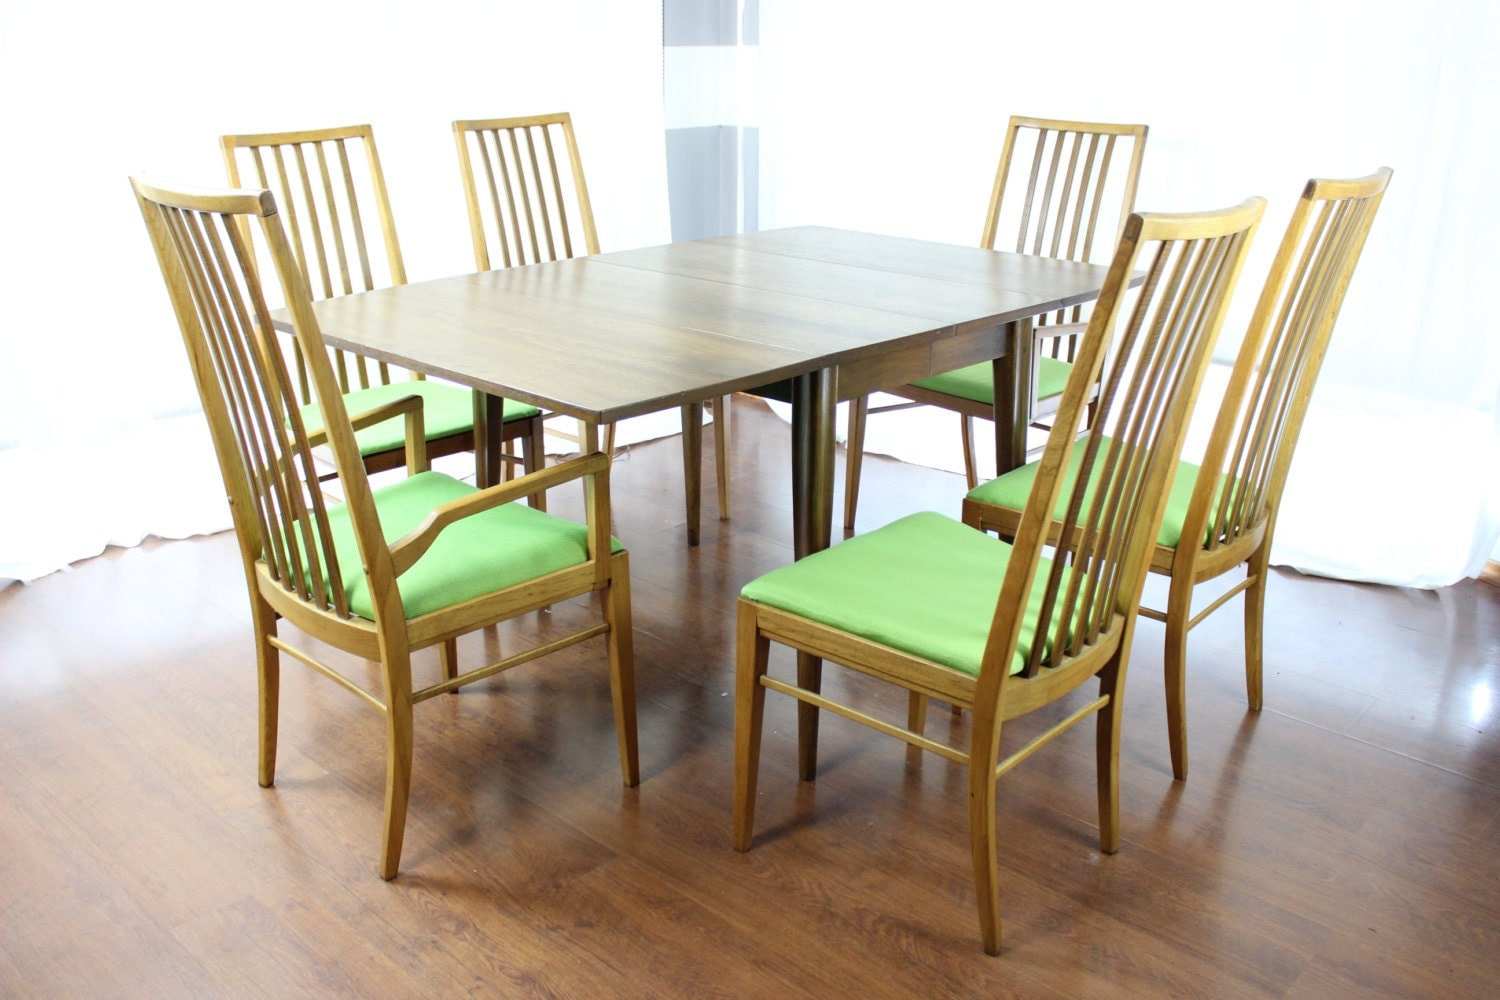 1960s danish modern dining room table and chairs